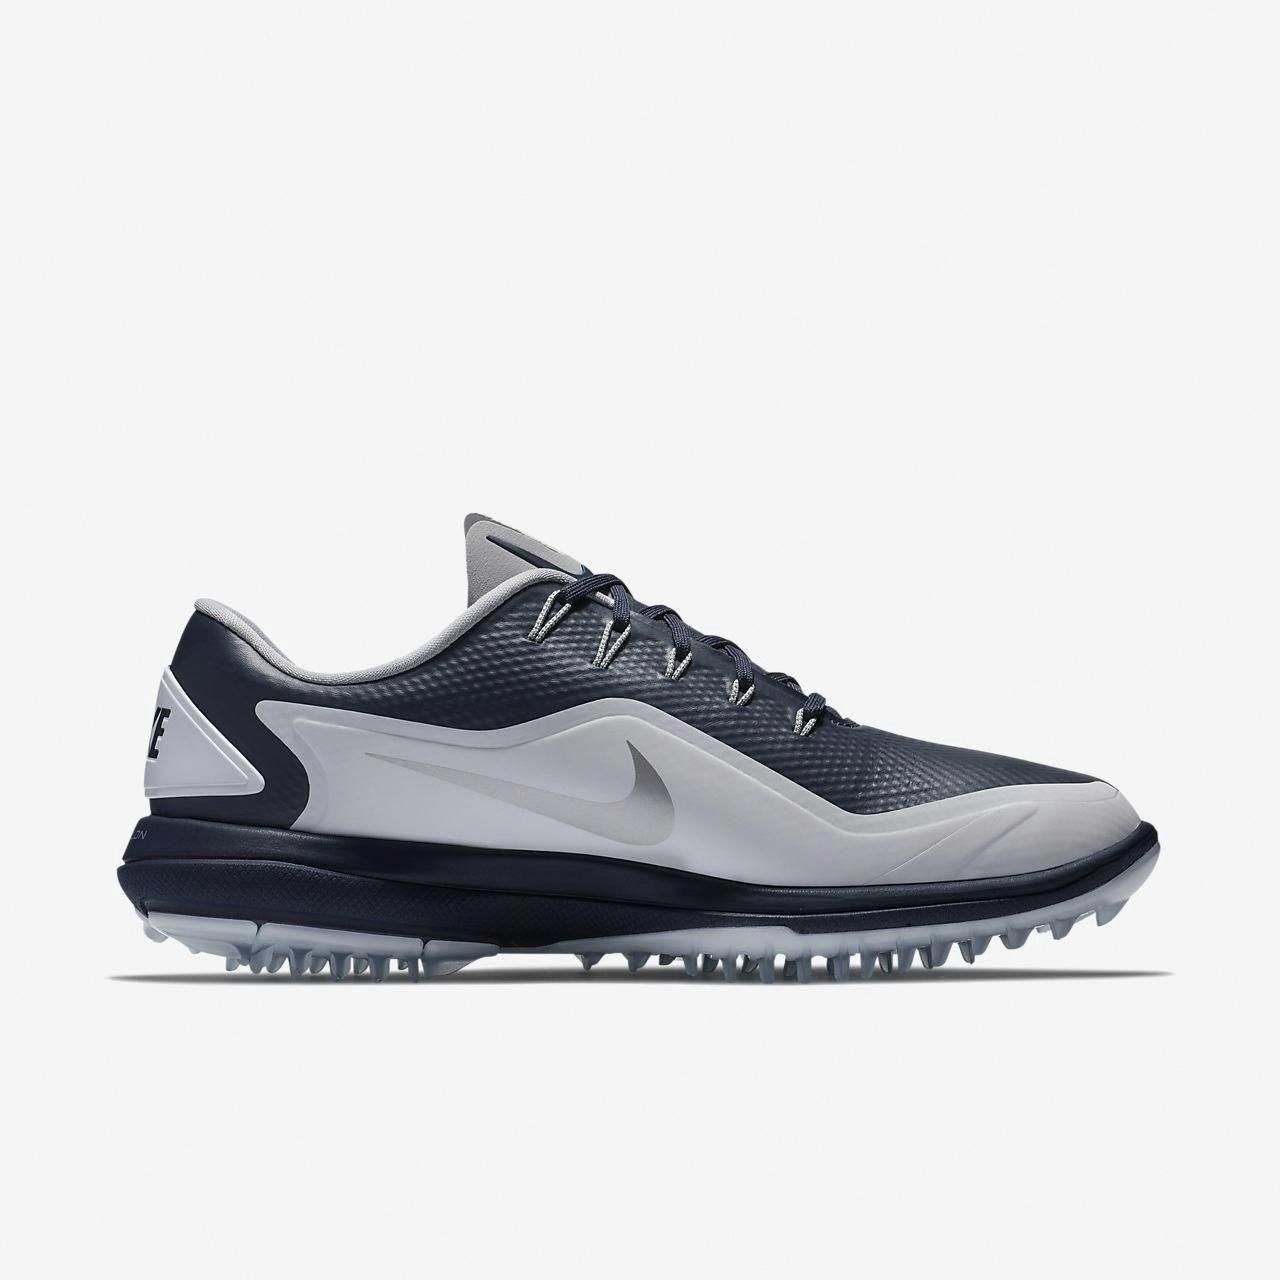 Nike Lunar Control Vapor 2 Men S Golf Shoe 10 5 Silver Mensgolftips Golftipsswings In 2020 Womens Golf Wear Golf Shoes Mens Golf Shoes